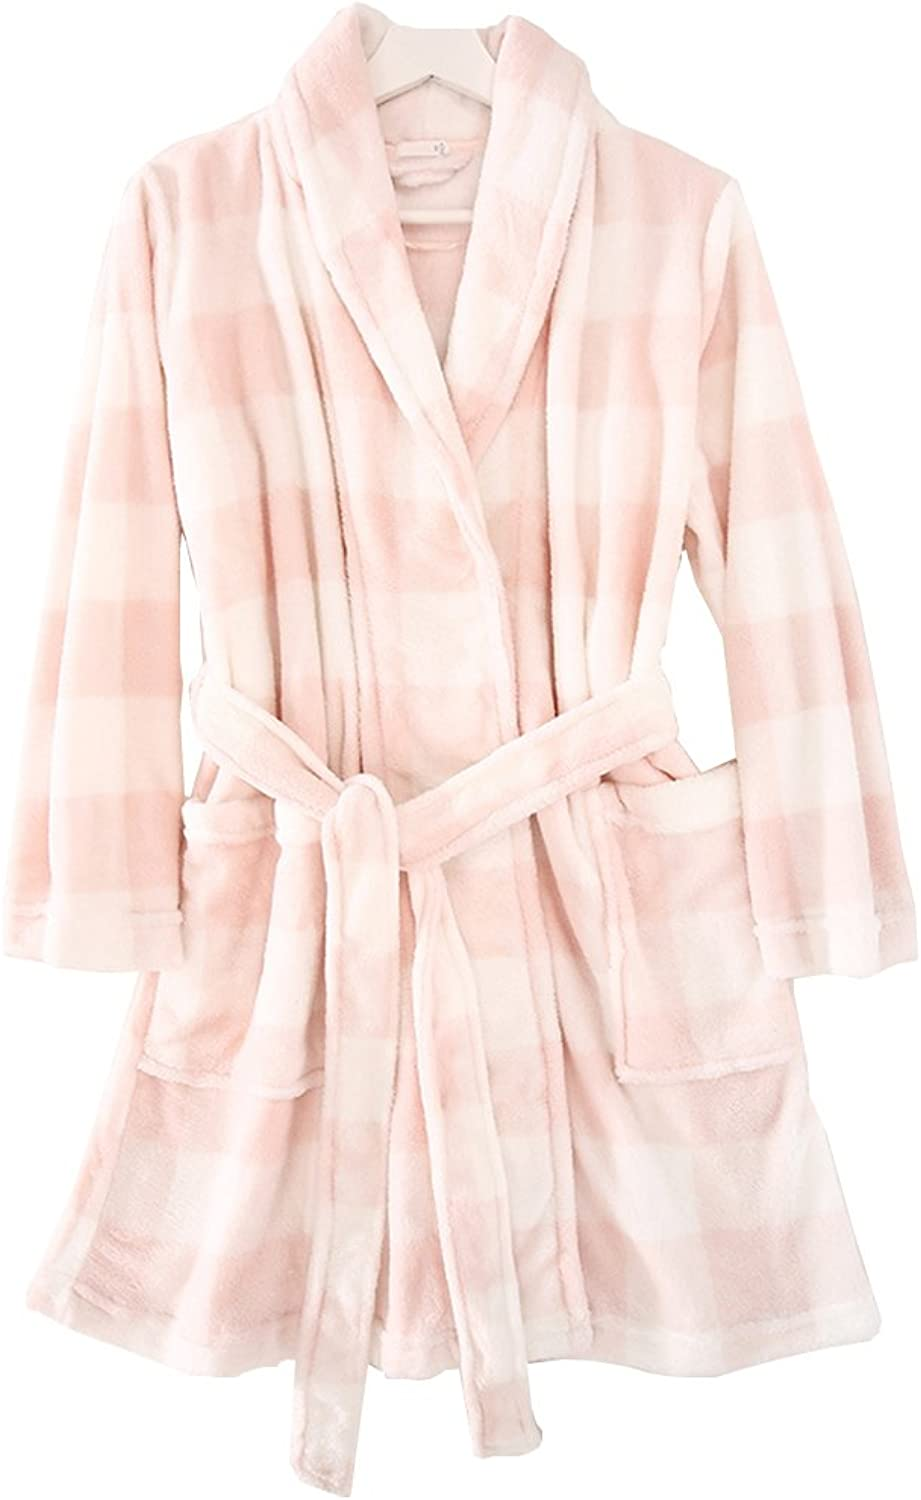 Women'S robe super plush fleece spa bathrobe pink lattice